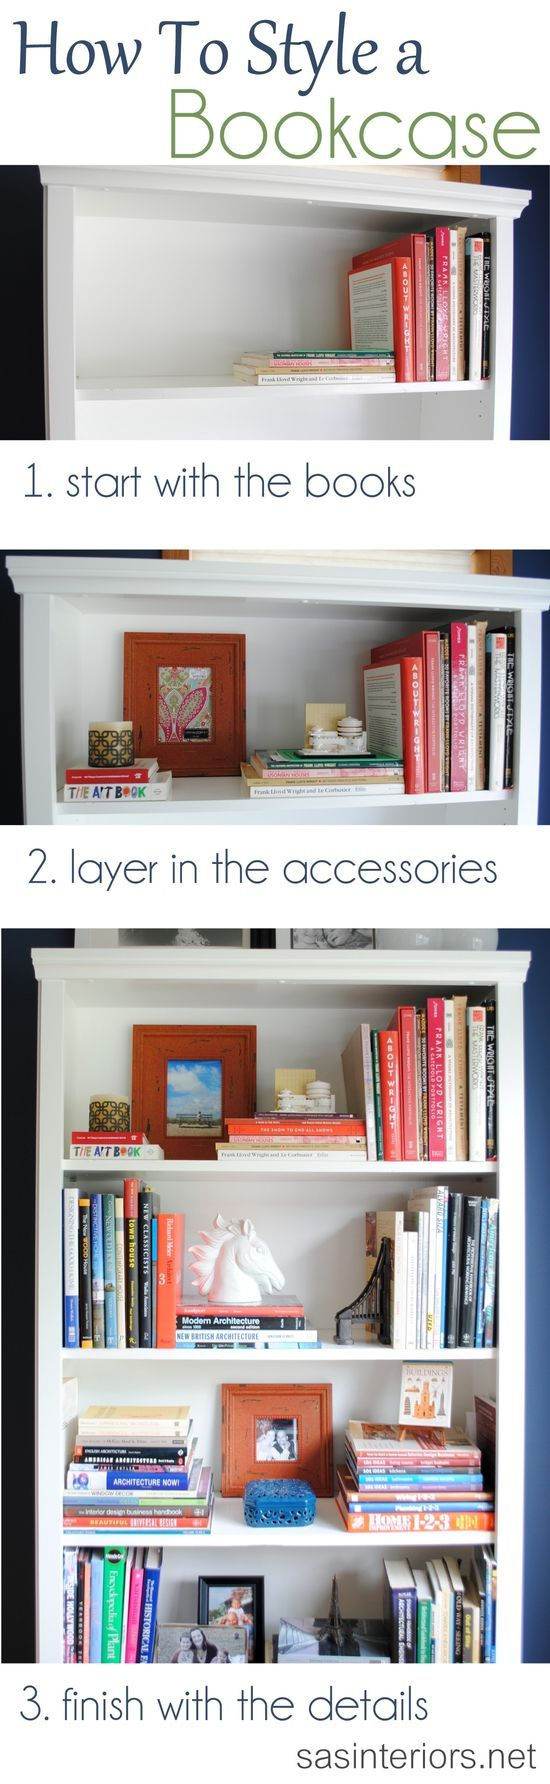 57 best Styled images on Pinterest | Bedroom ideas, Bookcases and ...